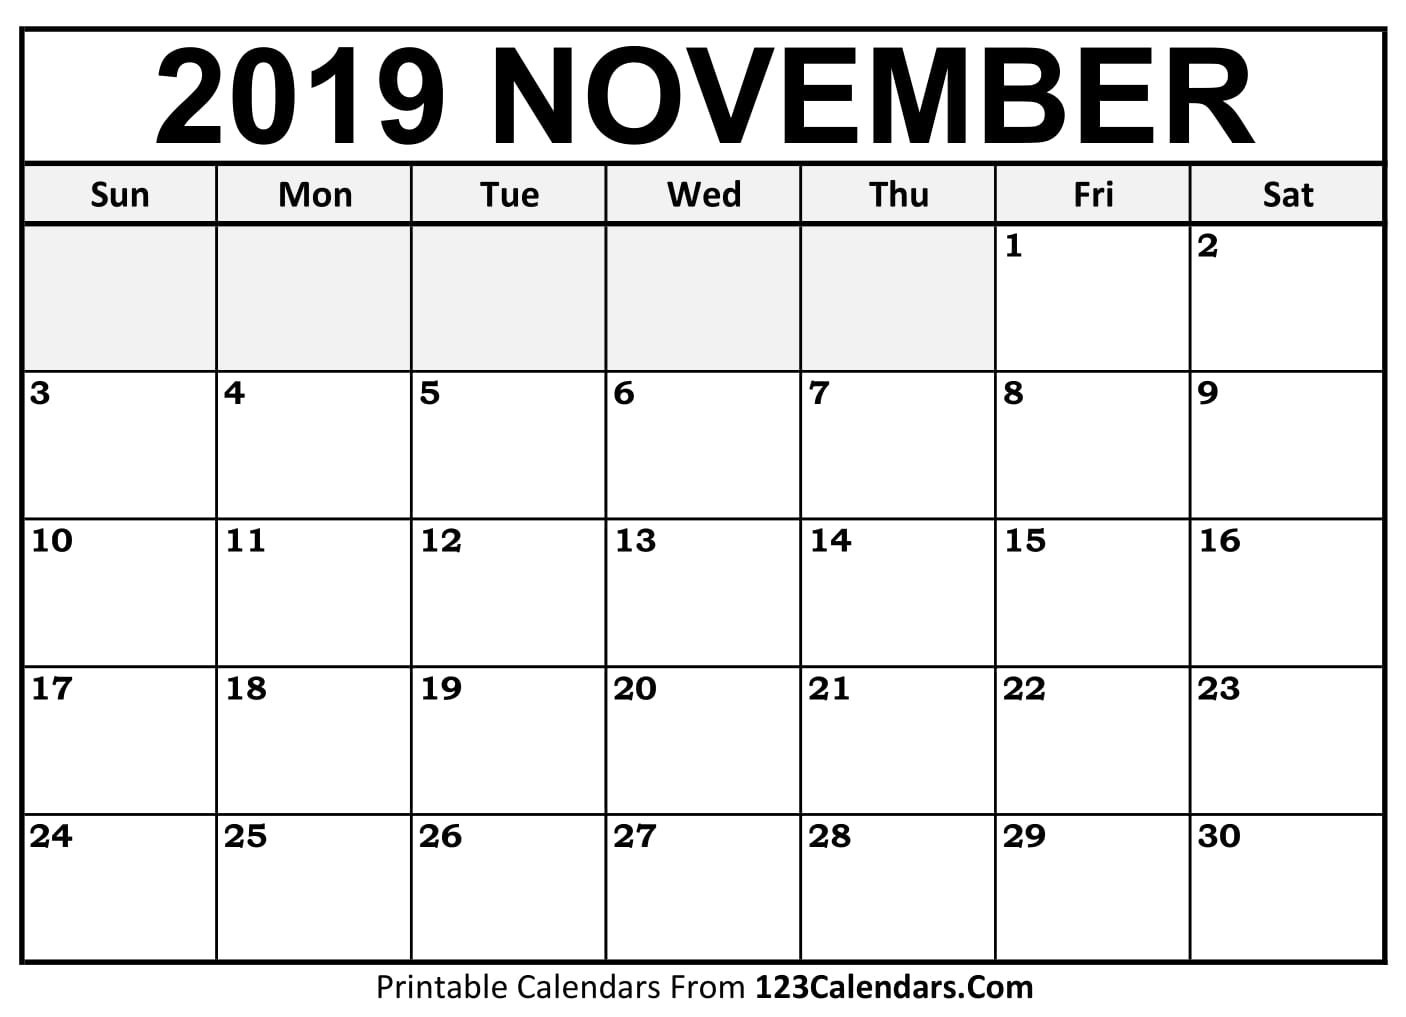 graphic regarding Printable November Calendar referred to as November 2019 Printable Calendar